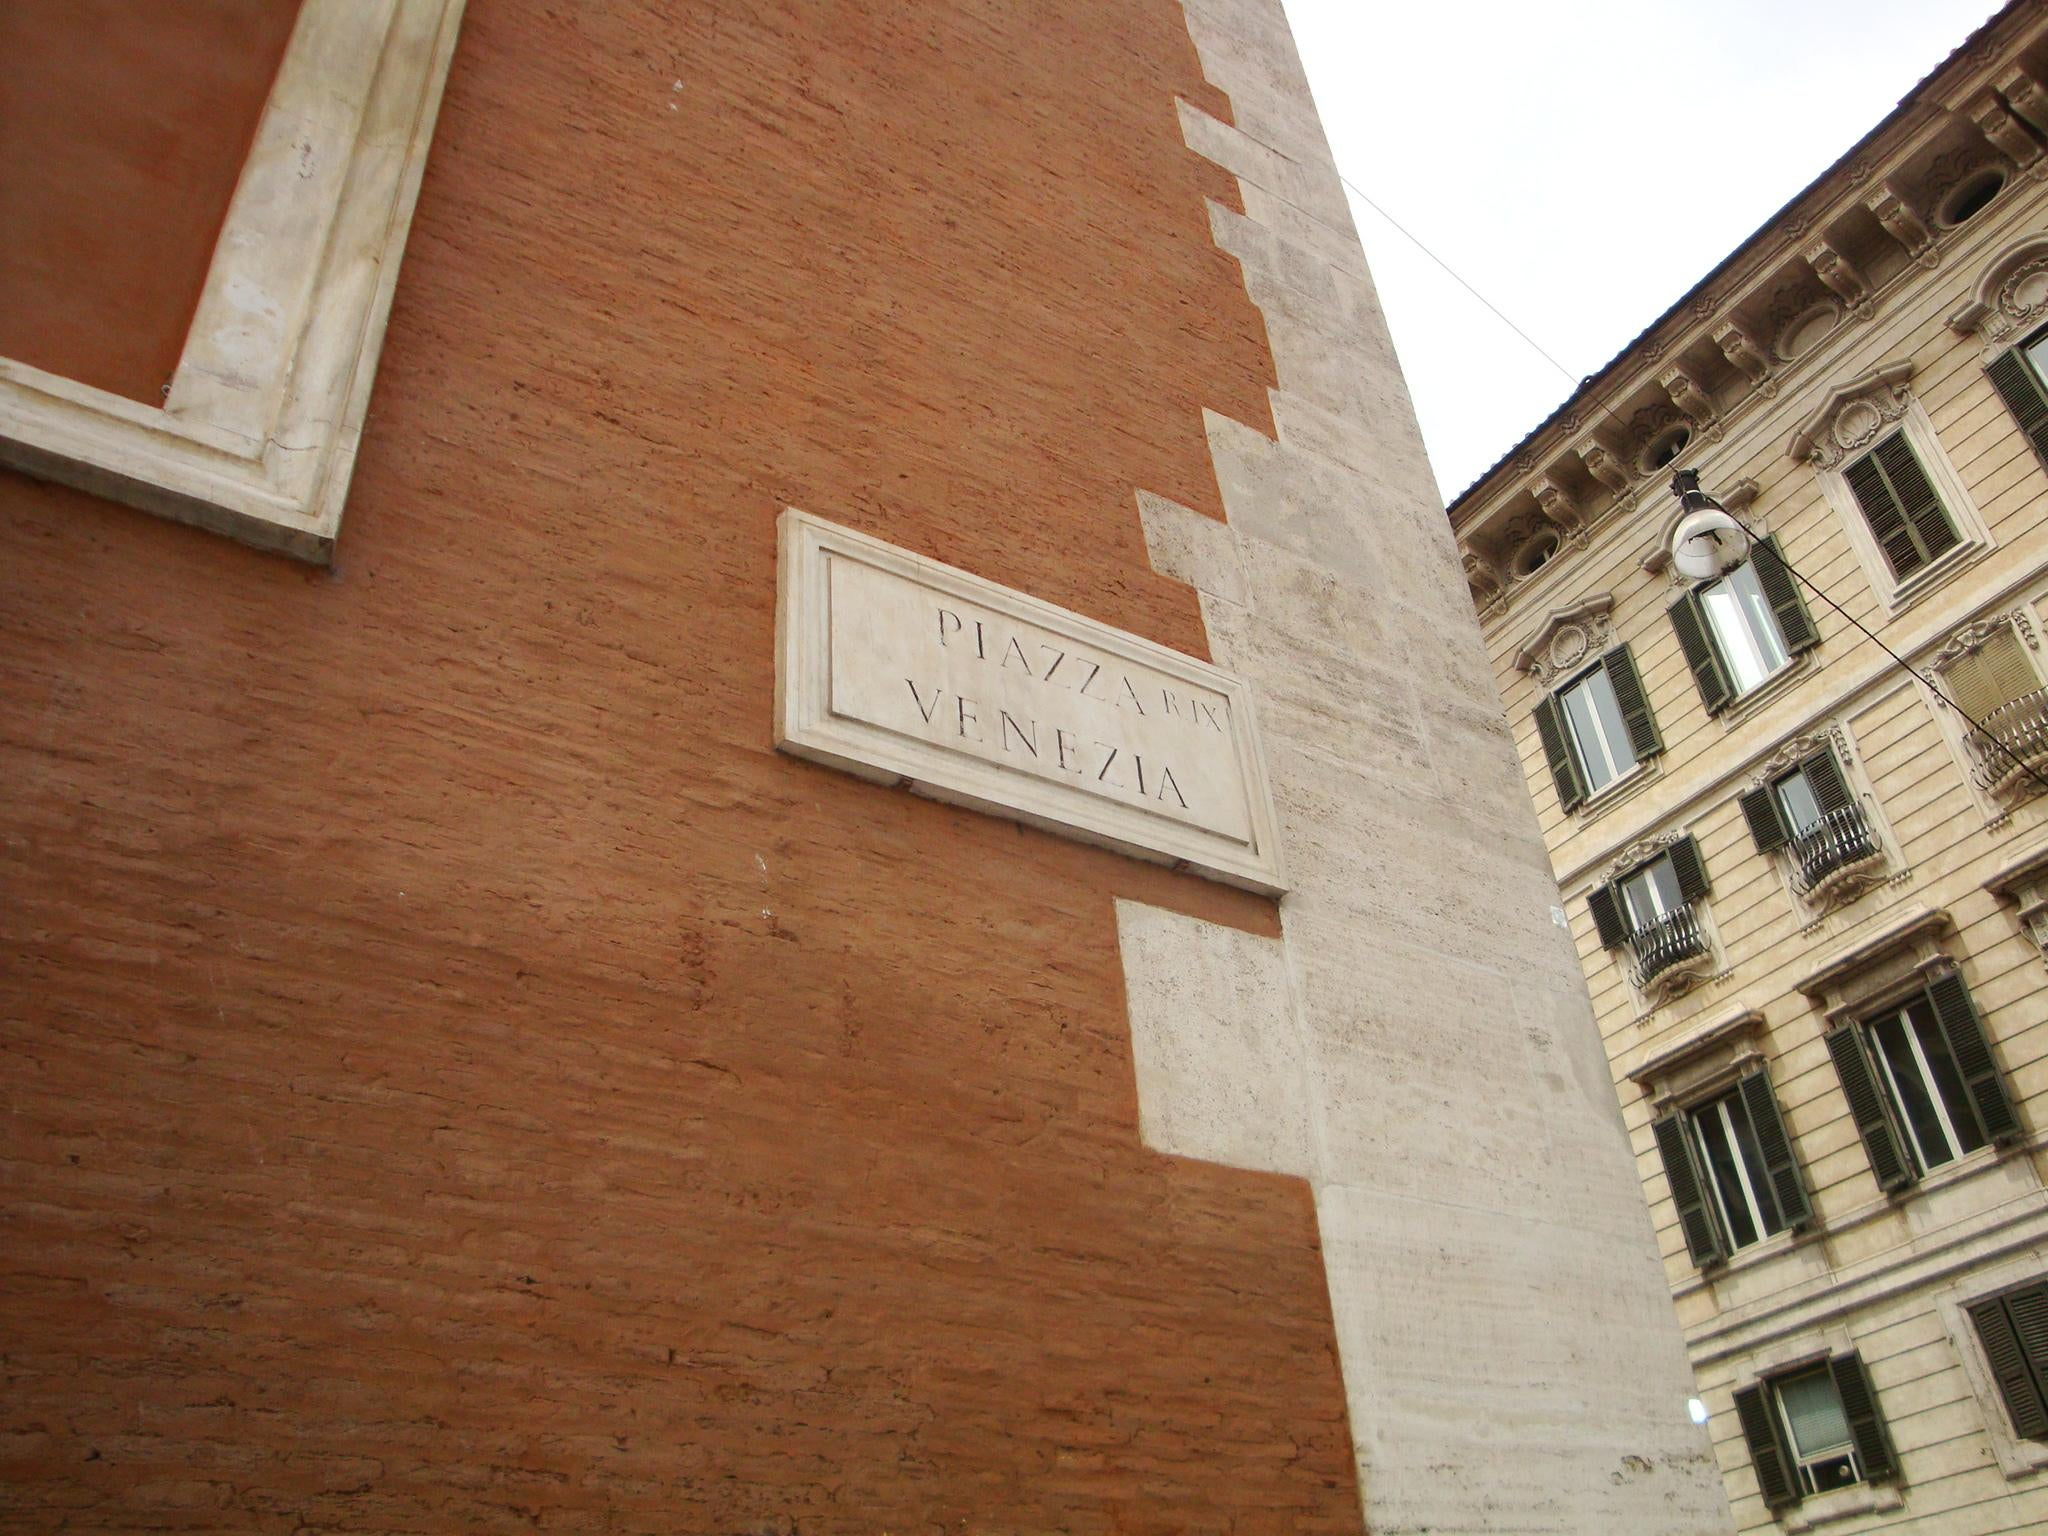 Pared en Piazza Venecia